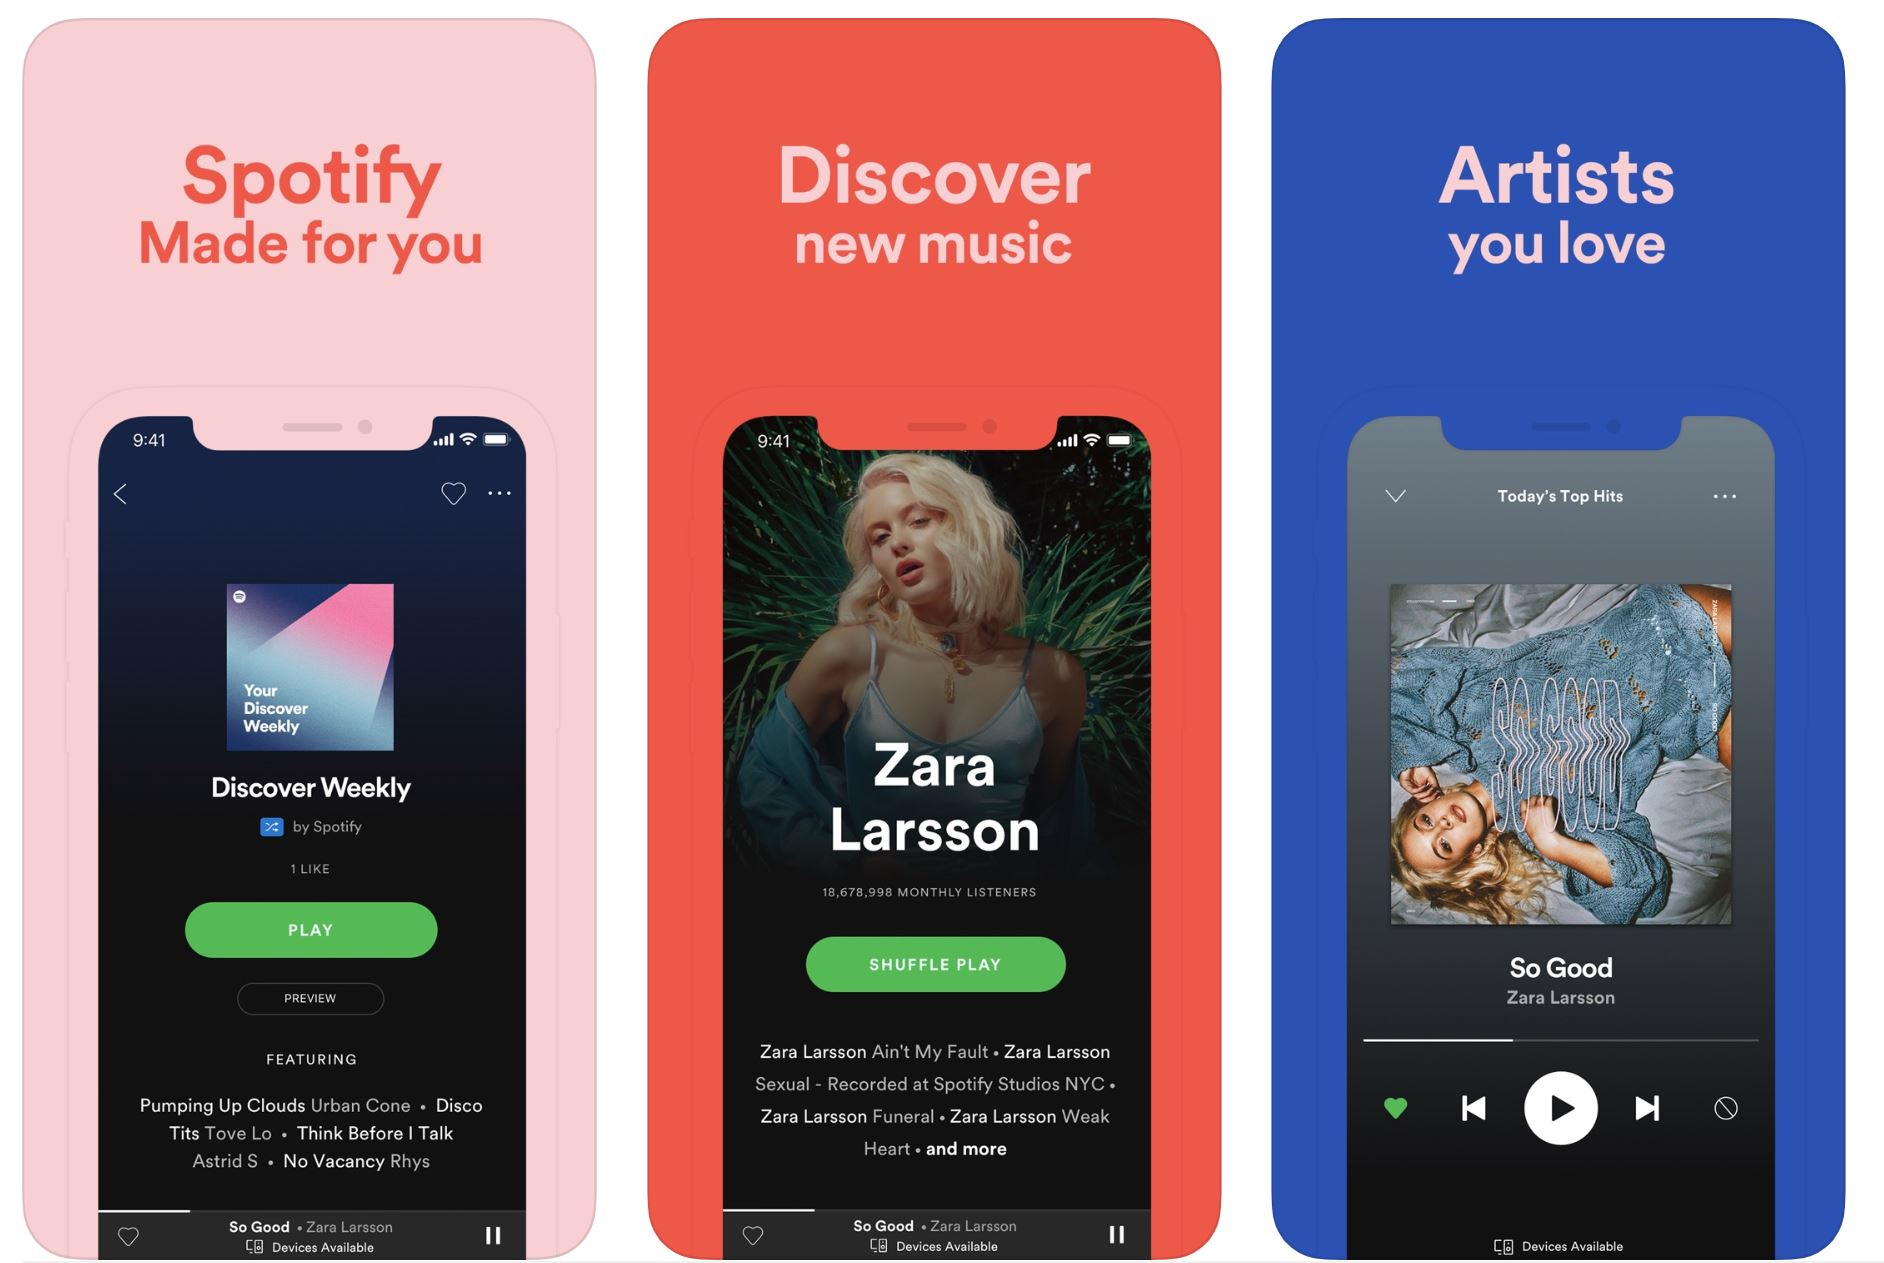 Spotify can be now controlled using Siri on iPhone, iPad, Carplay, AirPods, and HomePod 1